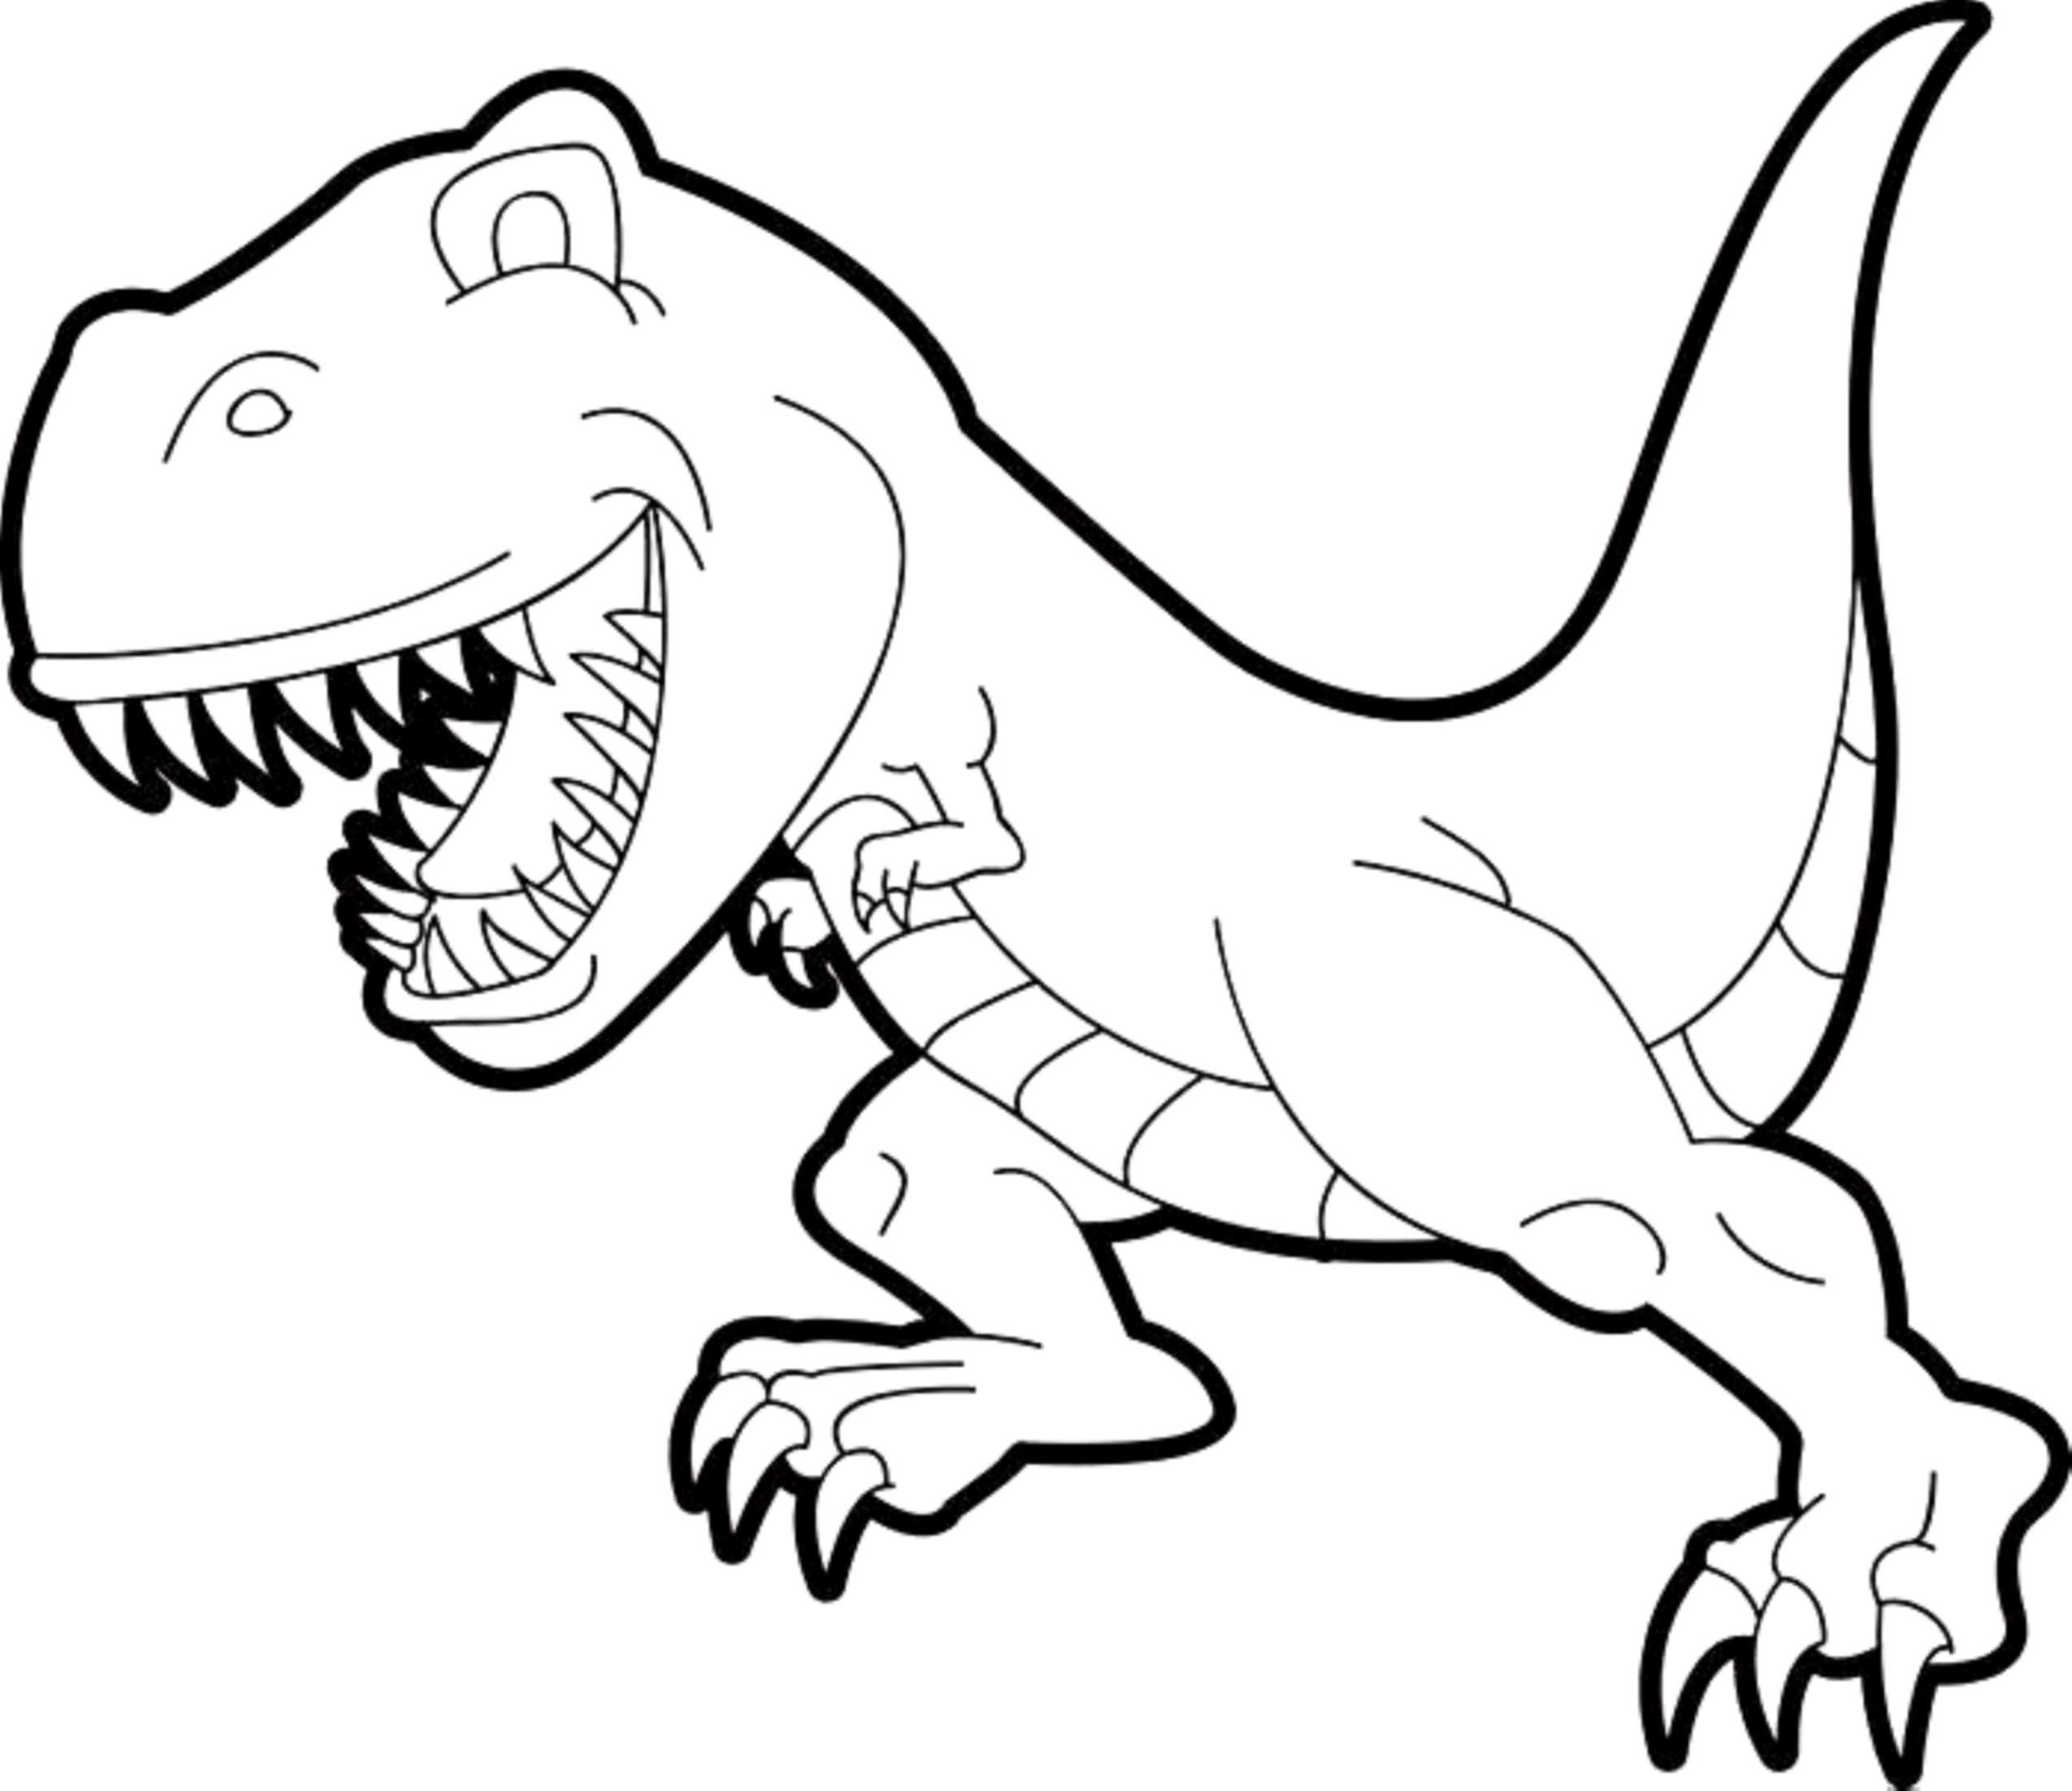 simple dinosaur coloring pages baby dinosaur coloring pages for preschoolers activity dinosaur simple pages coloring